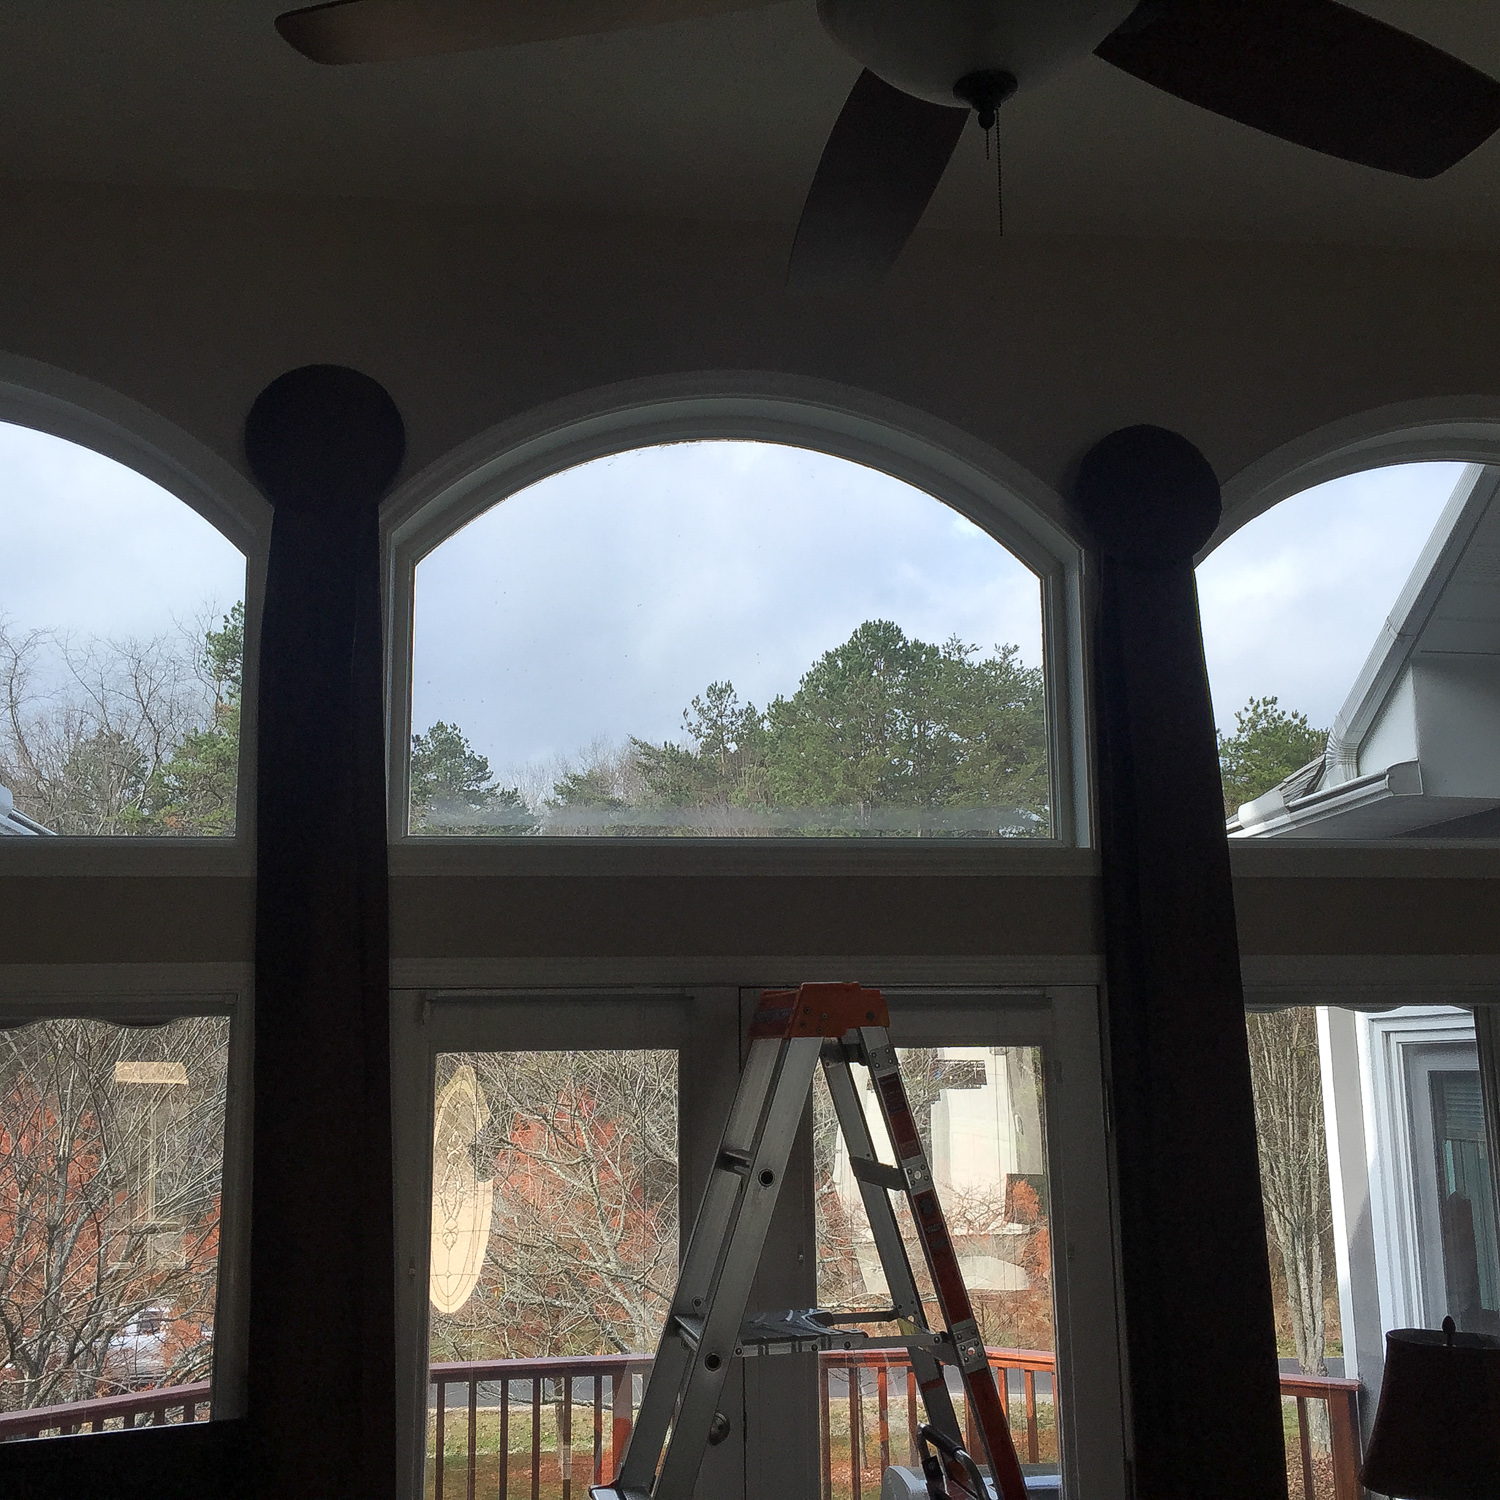 knoxville-tn-glass-replacement-windows-9.jpg